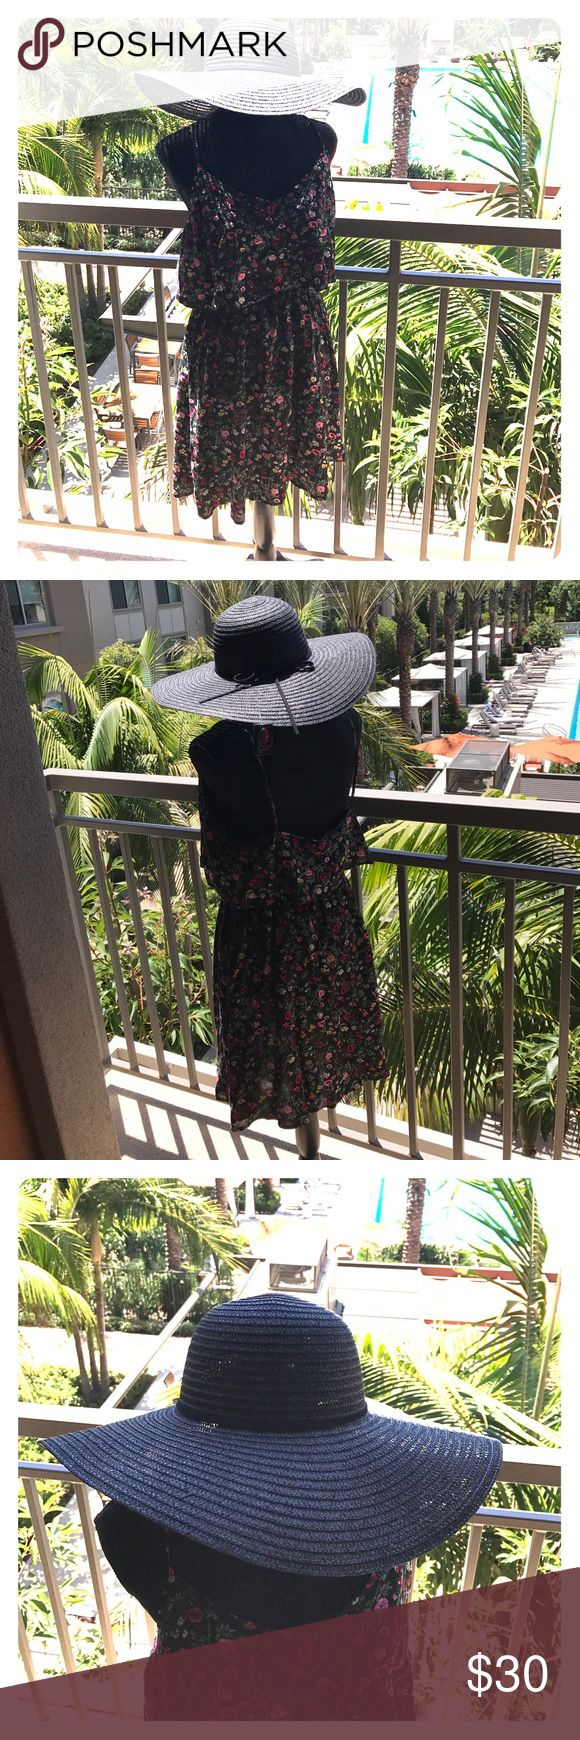 H&M ❤️ Coachella Dress w/Hat Floral print  light weight dress with elastic waist! Supa chic floppy straw hat! Perfect for that next festival or Vacay!! 🌴⭐️💃🏾 H&M Dresses Mini